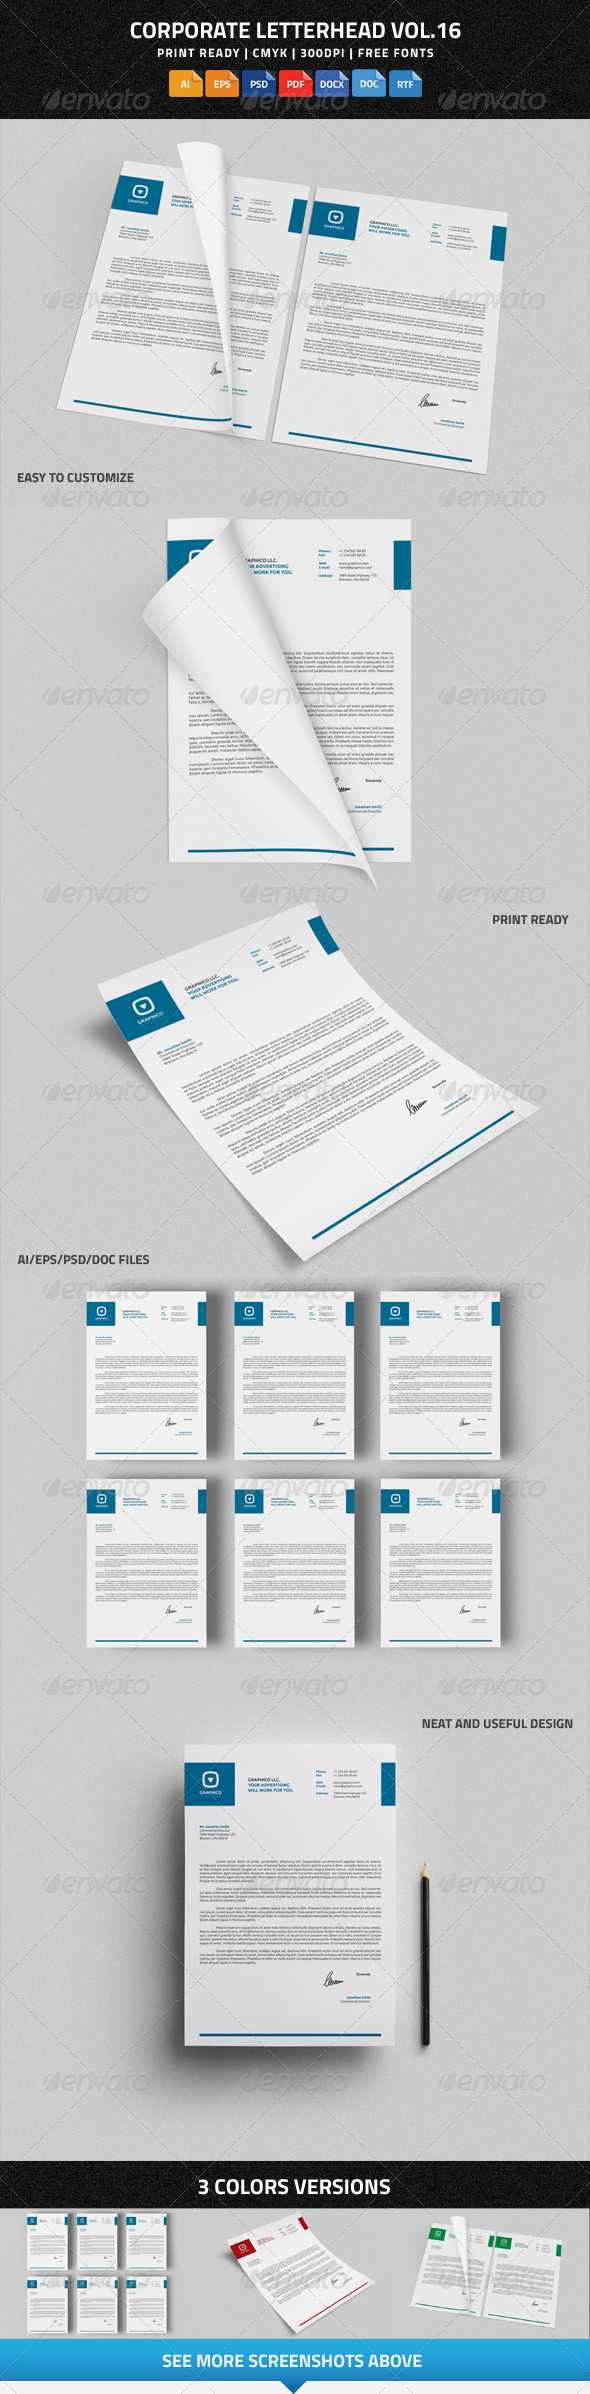 GraphicRiver Corporate Letterhead vol.16 with MS Word DOC DOCX 8293634